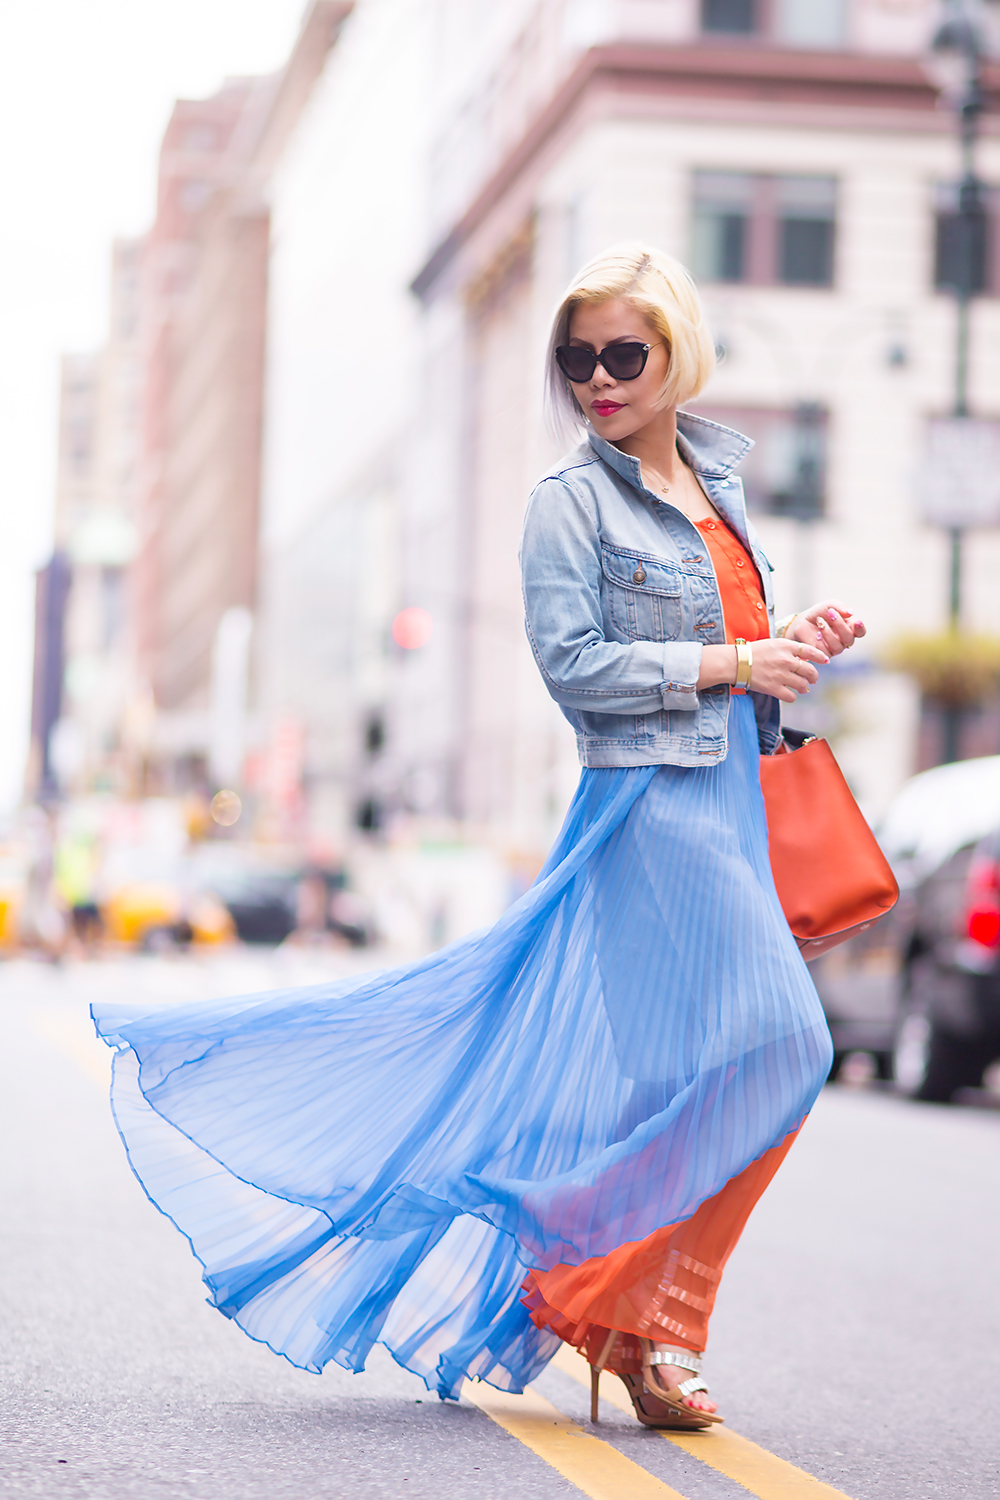 Crystal Phuong- New York Fashion Week 2015- Day 4 in Lie maxi skirt and denim jacket